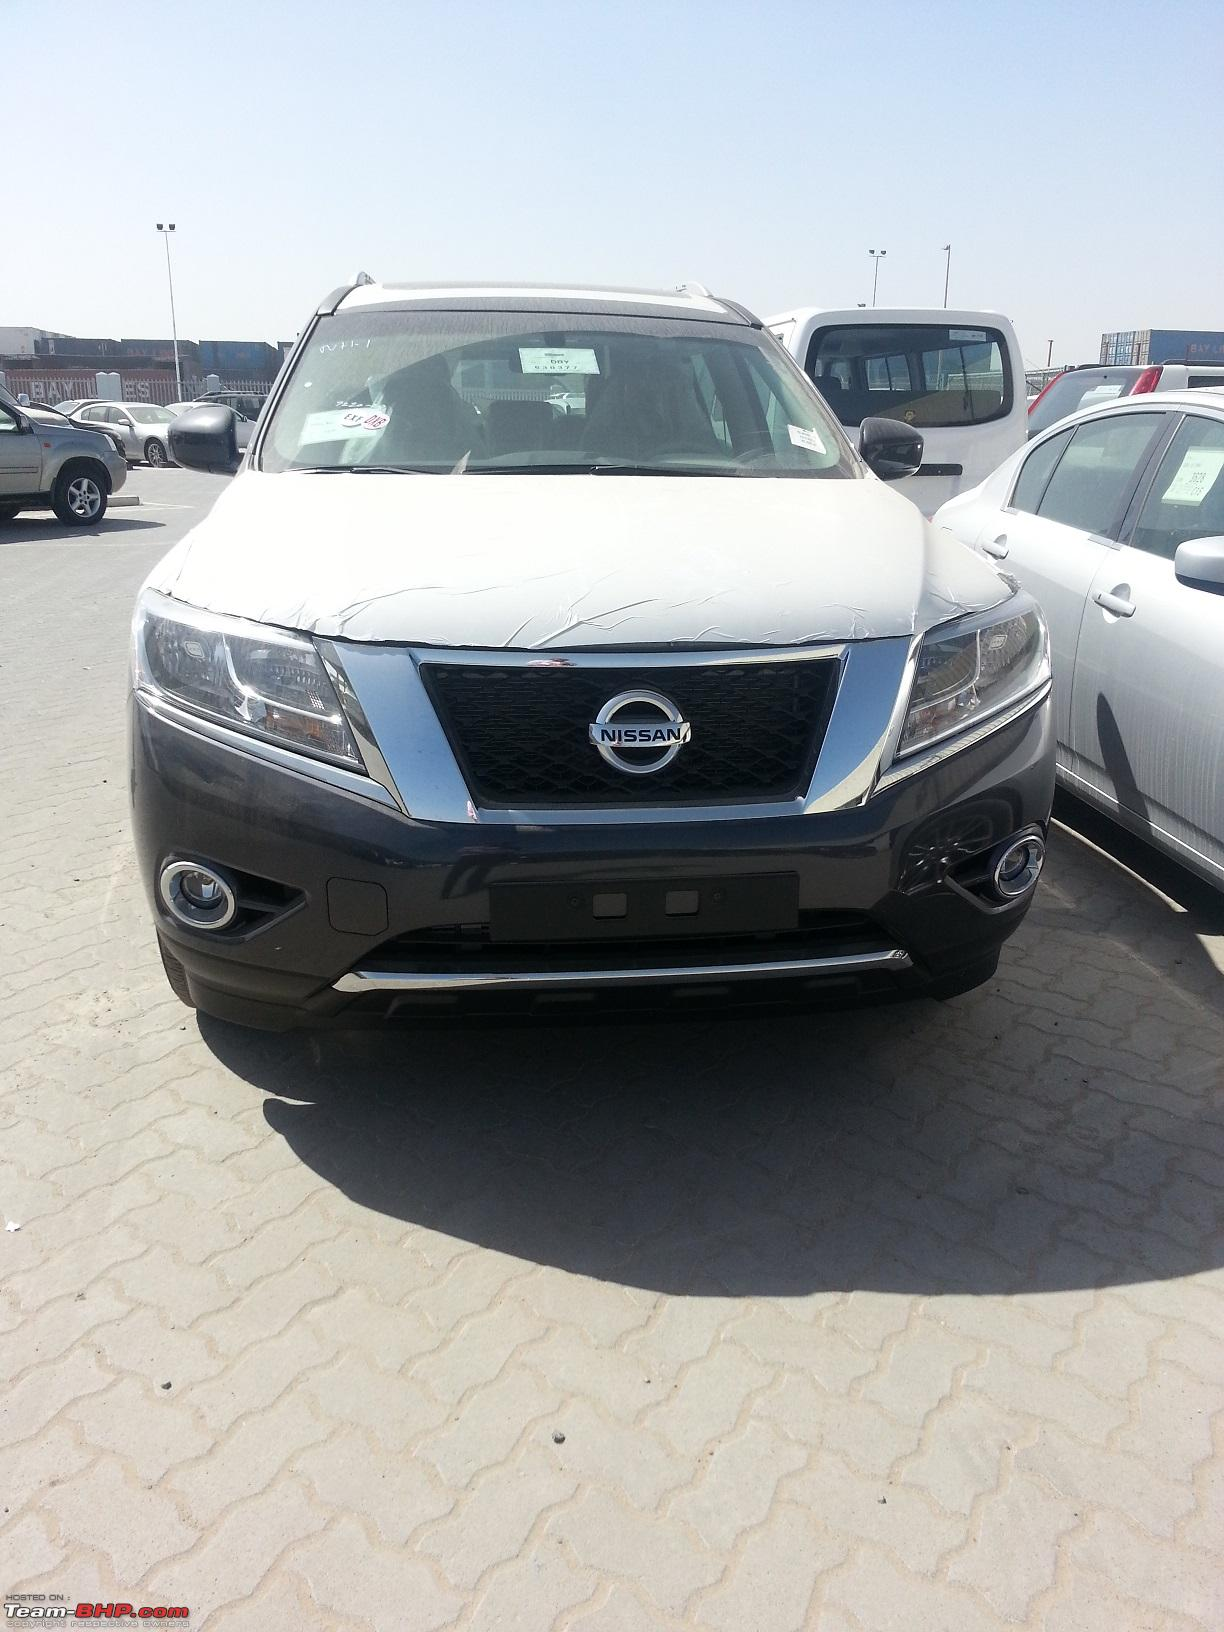 Nissan Pathfinder Owners Forum Related Keywords & Suggestions